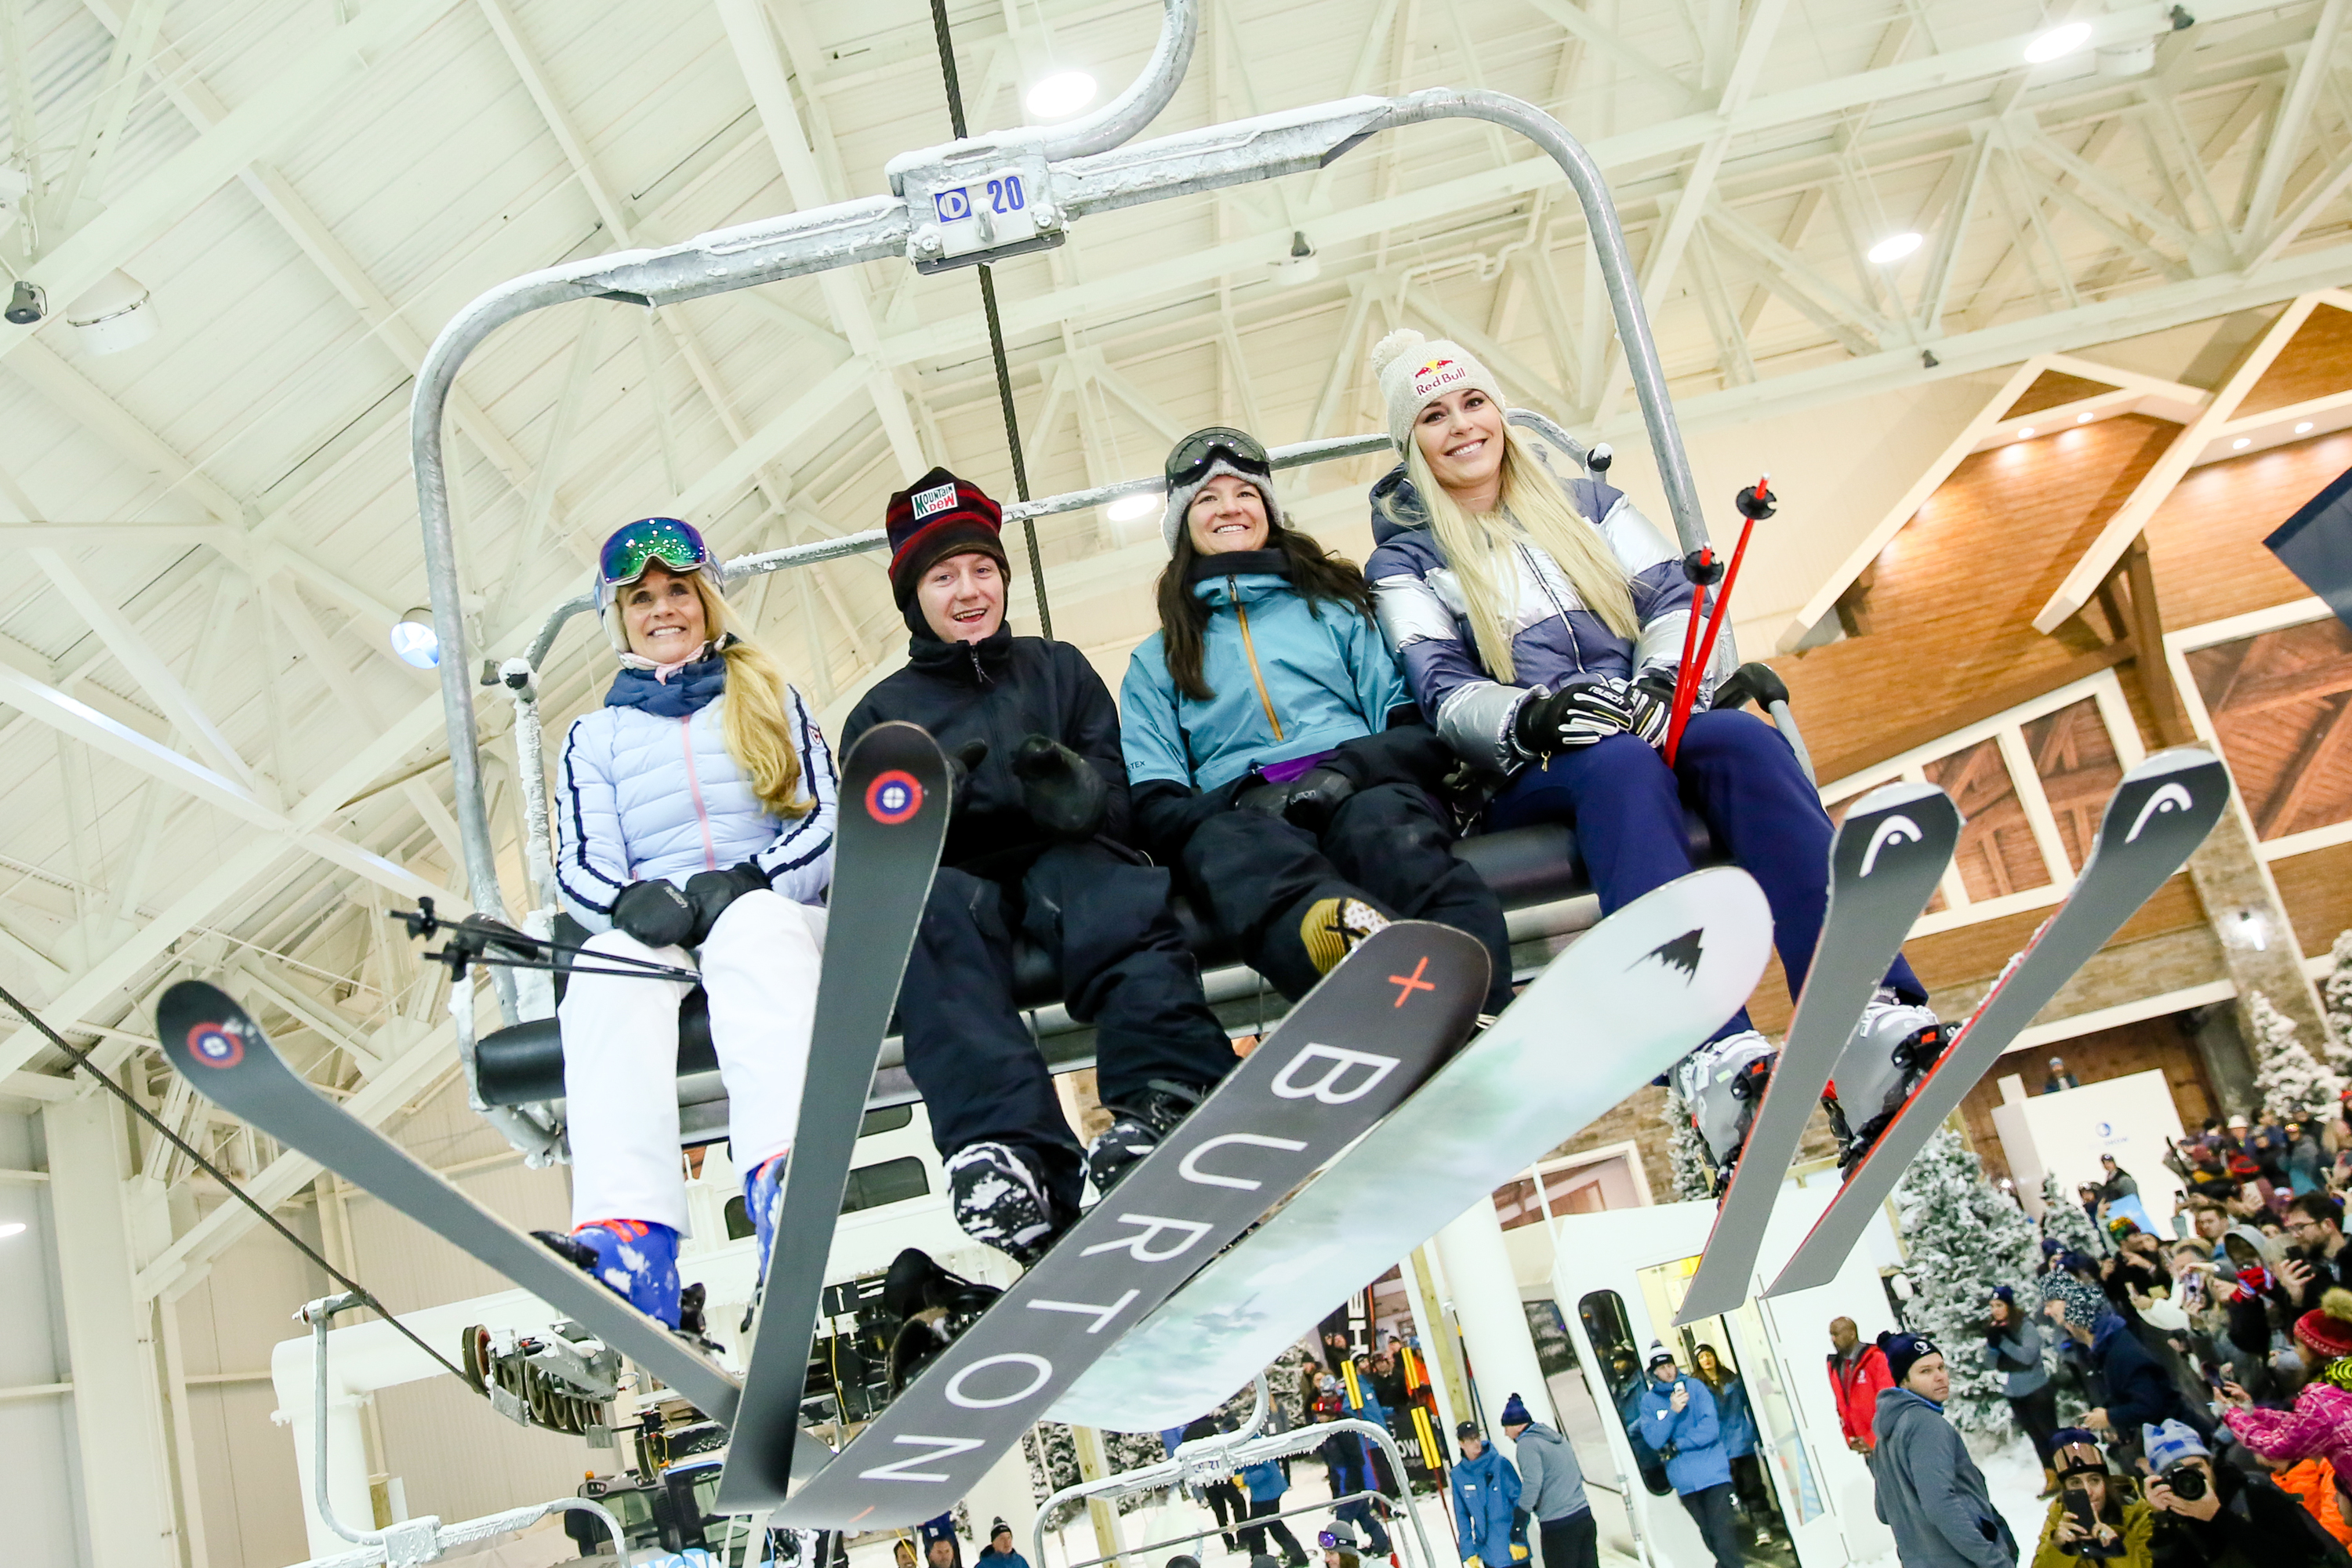 North America's first indoor ski slope has just opened